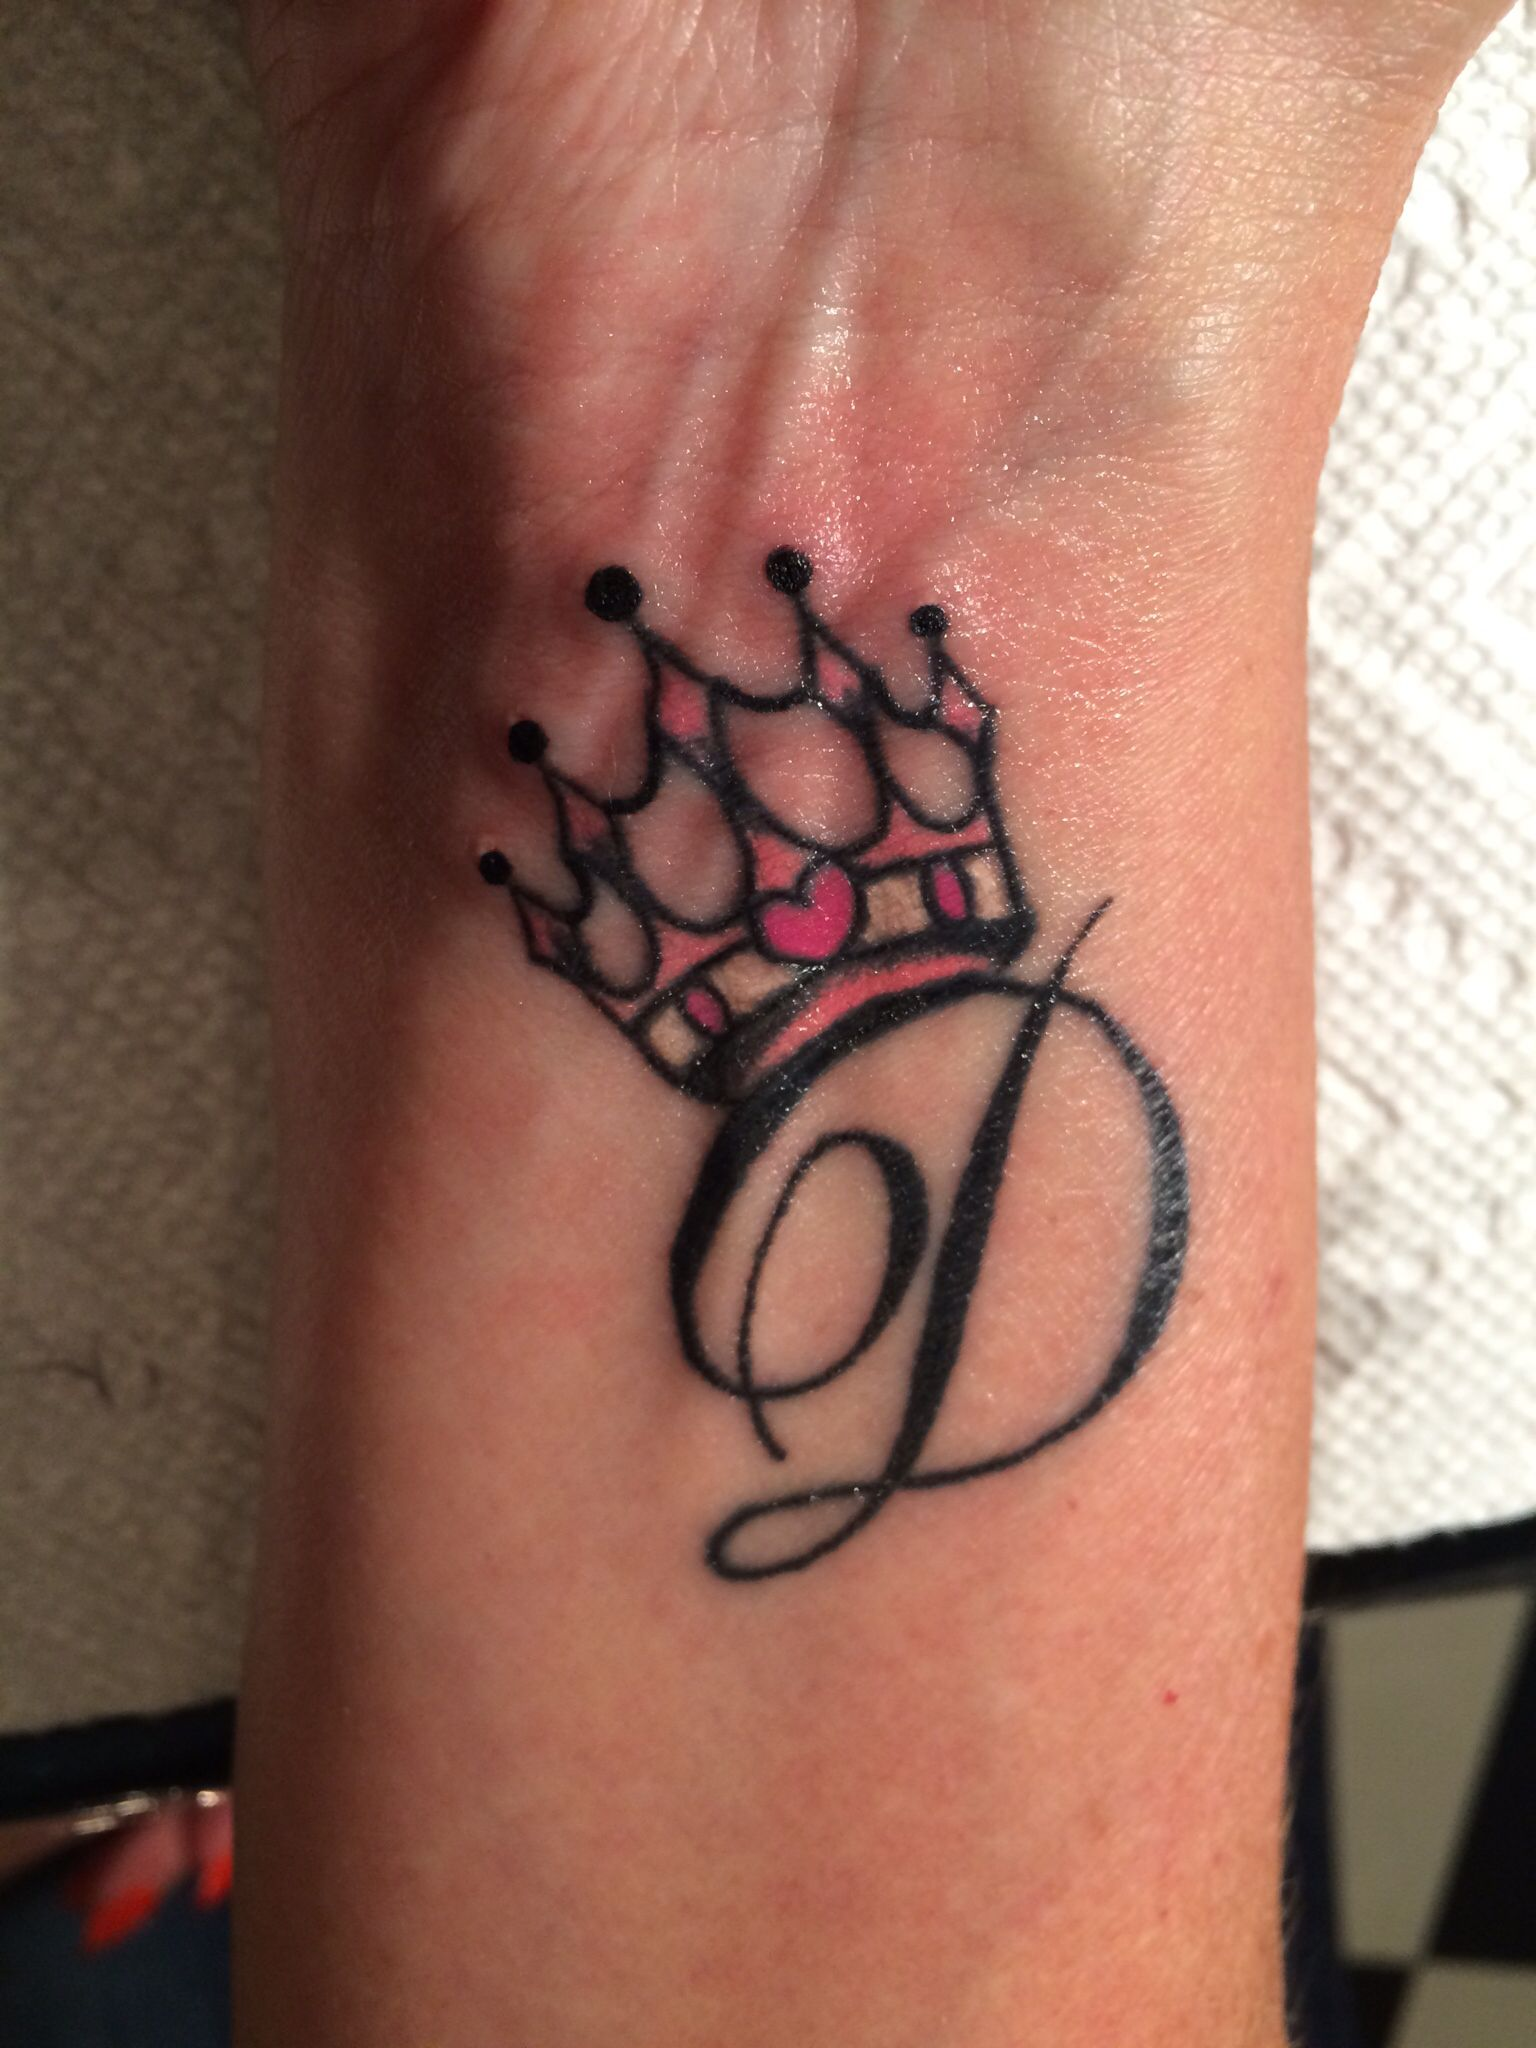 d905ee084 My new princess crown initial tattoo !! | Tatoos | Heart tattoos ...